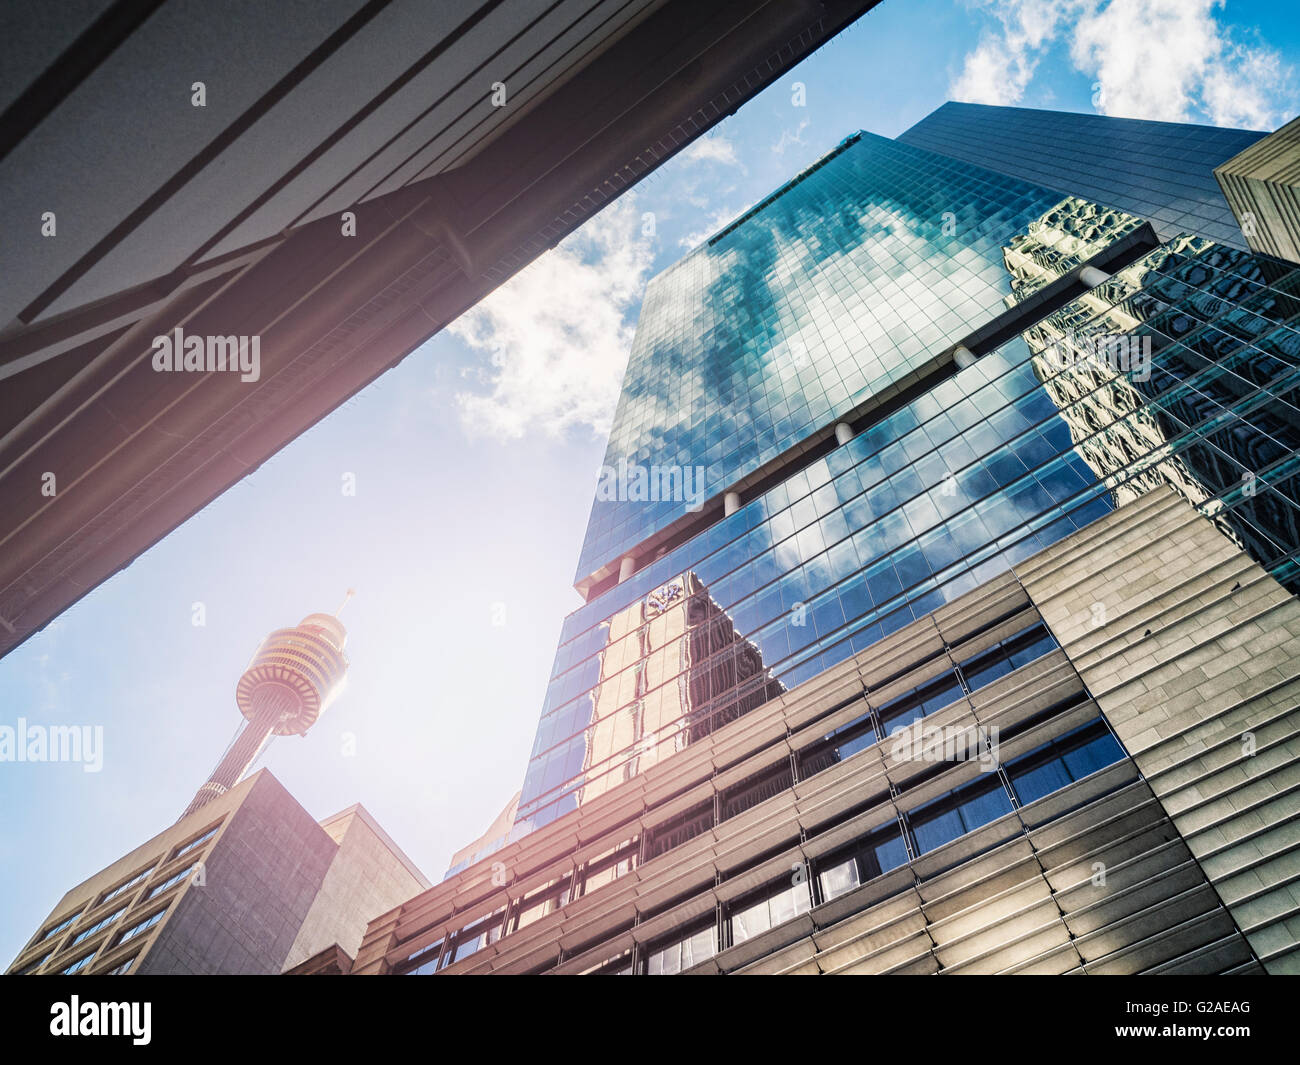 Clouds reflecting in glass buildings - Stock Image